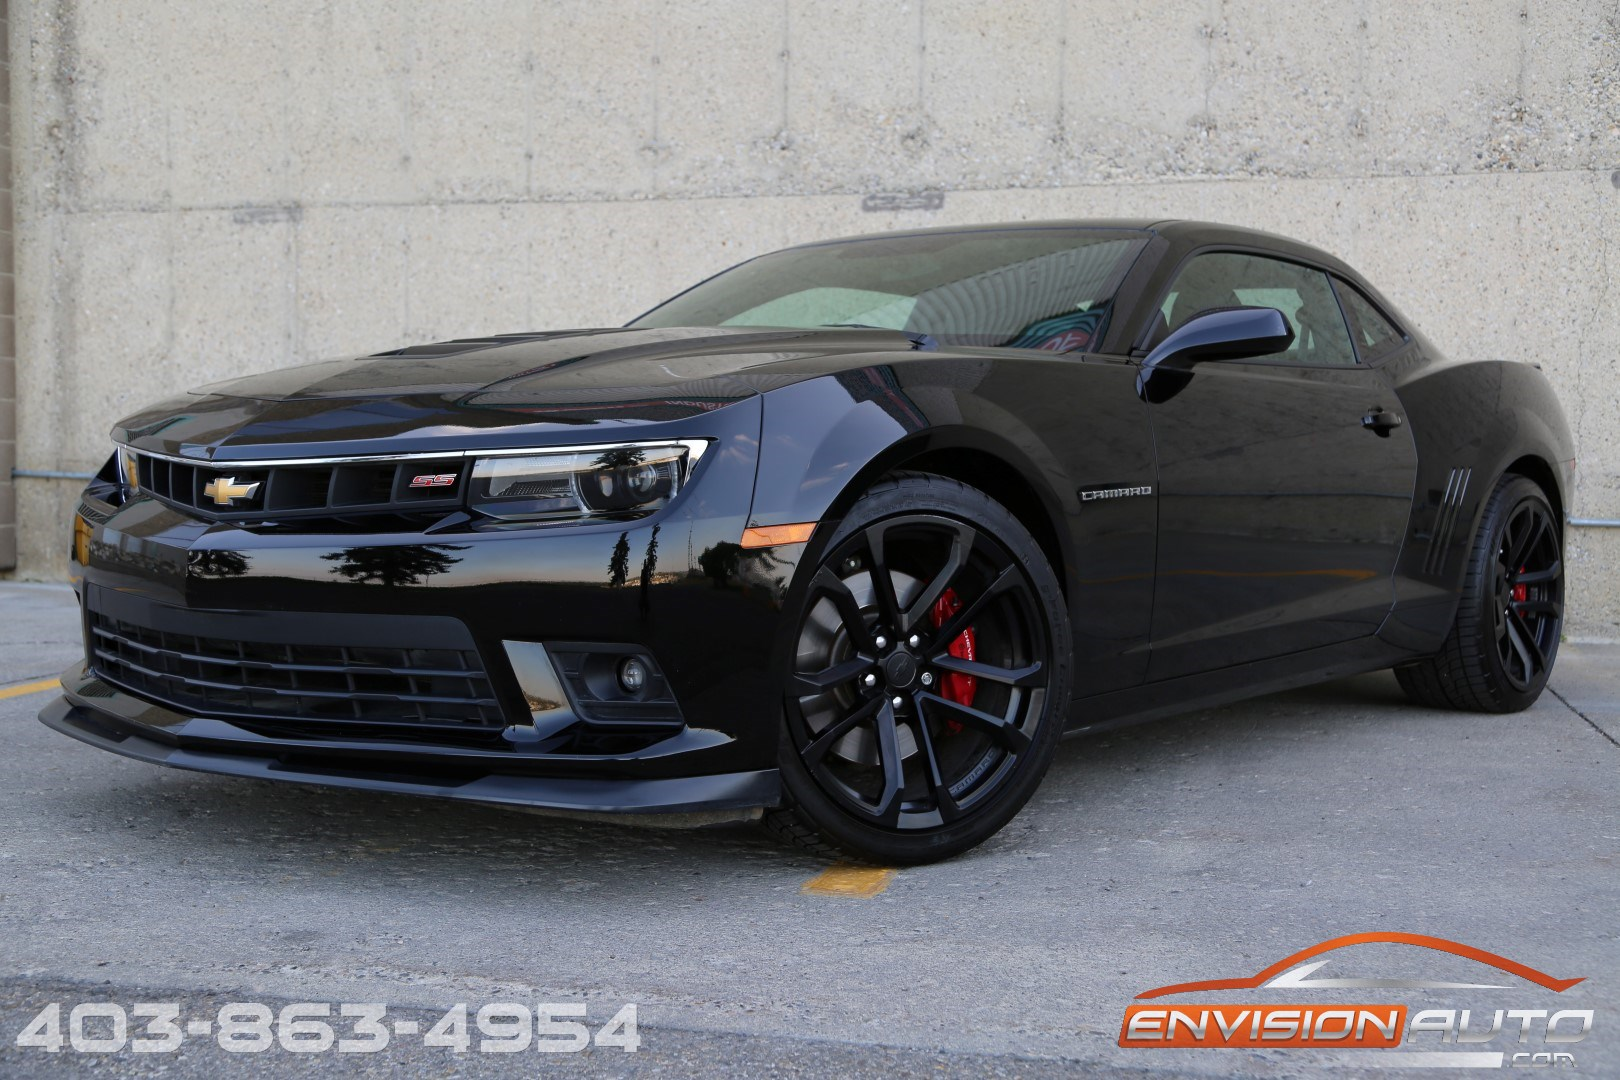 2015 chevrolet camaro ss 2ss rs 1le track pkg recaro seats envision auto. Black Bedroom Furniture Sets. Home Design Ideas